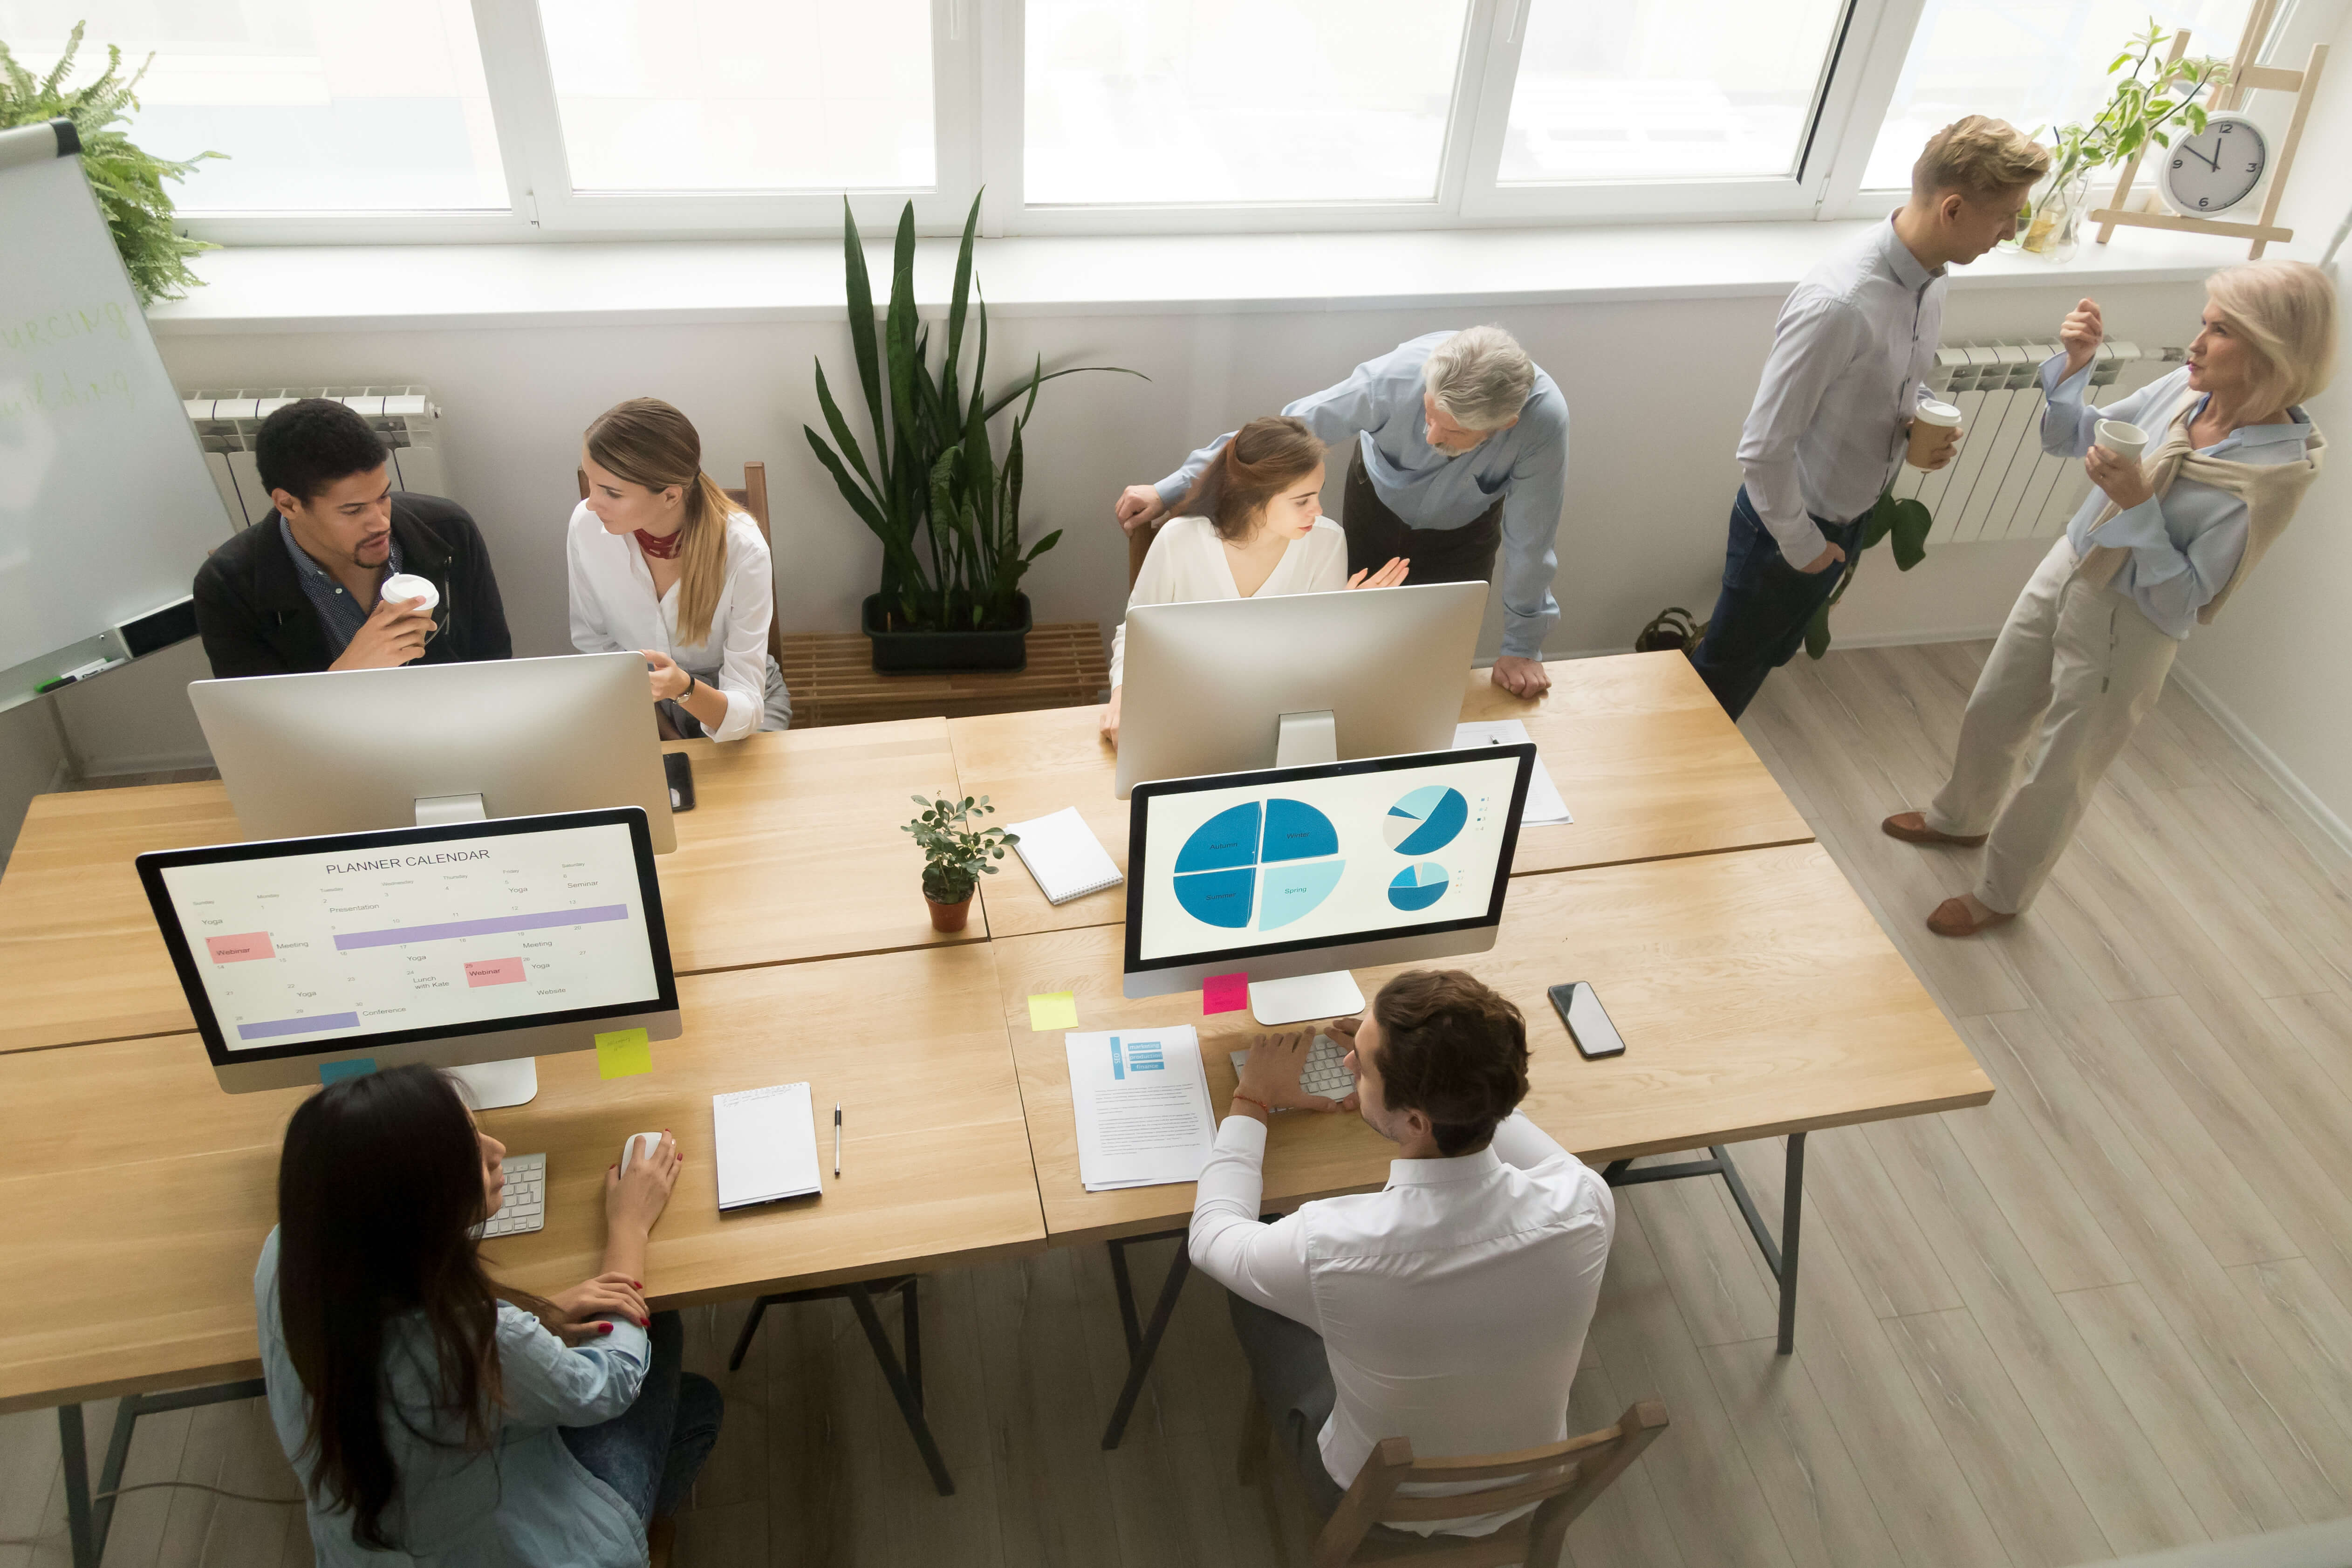 The impact of gender bias in the workplace